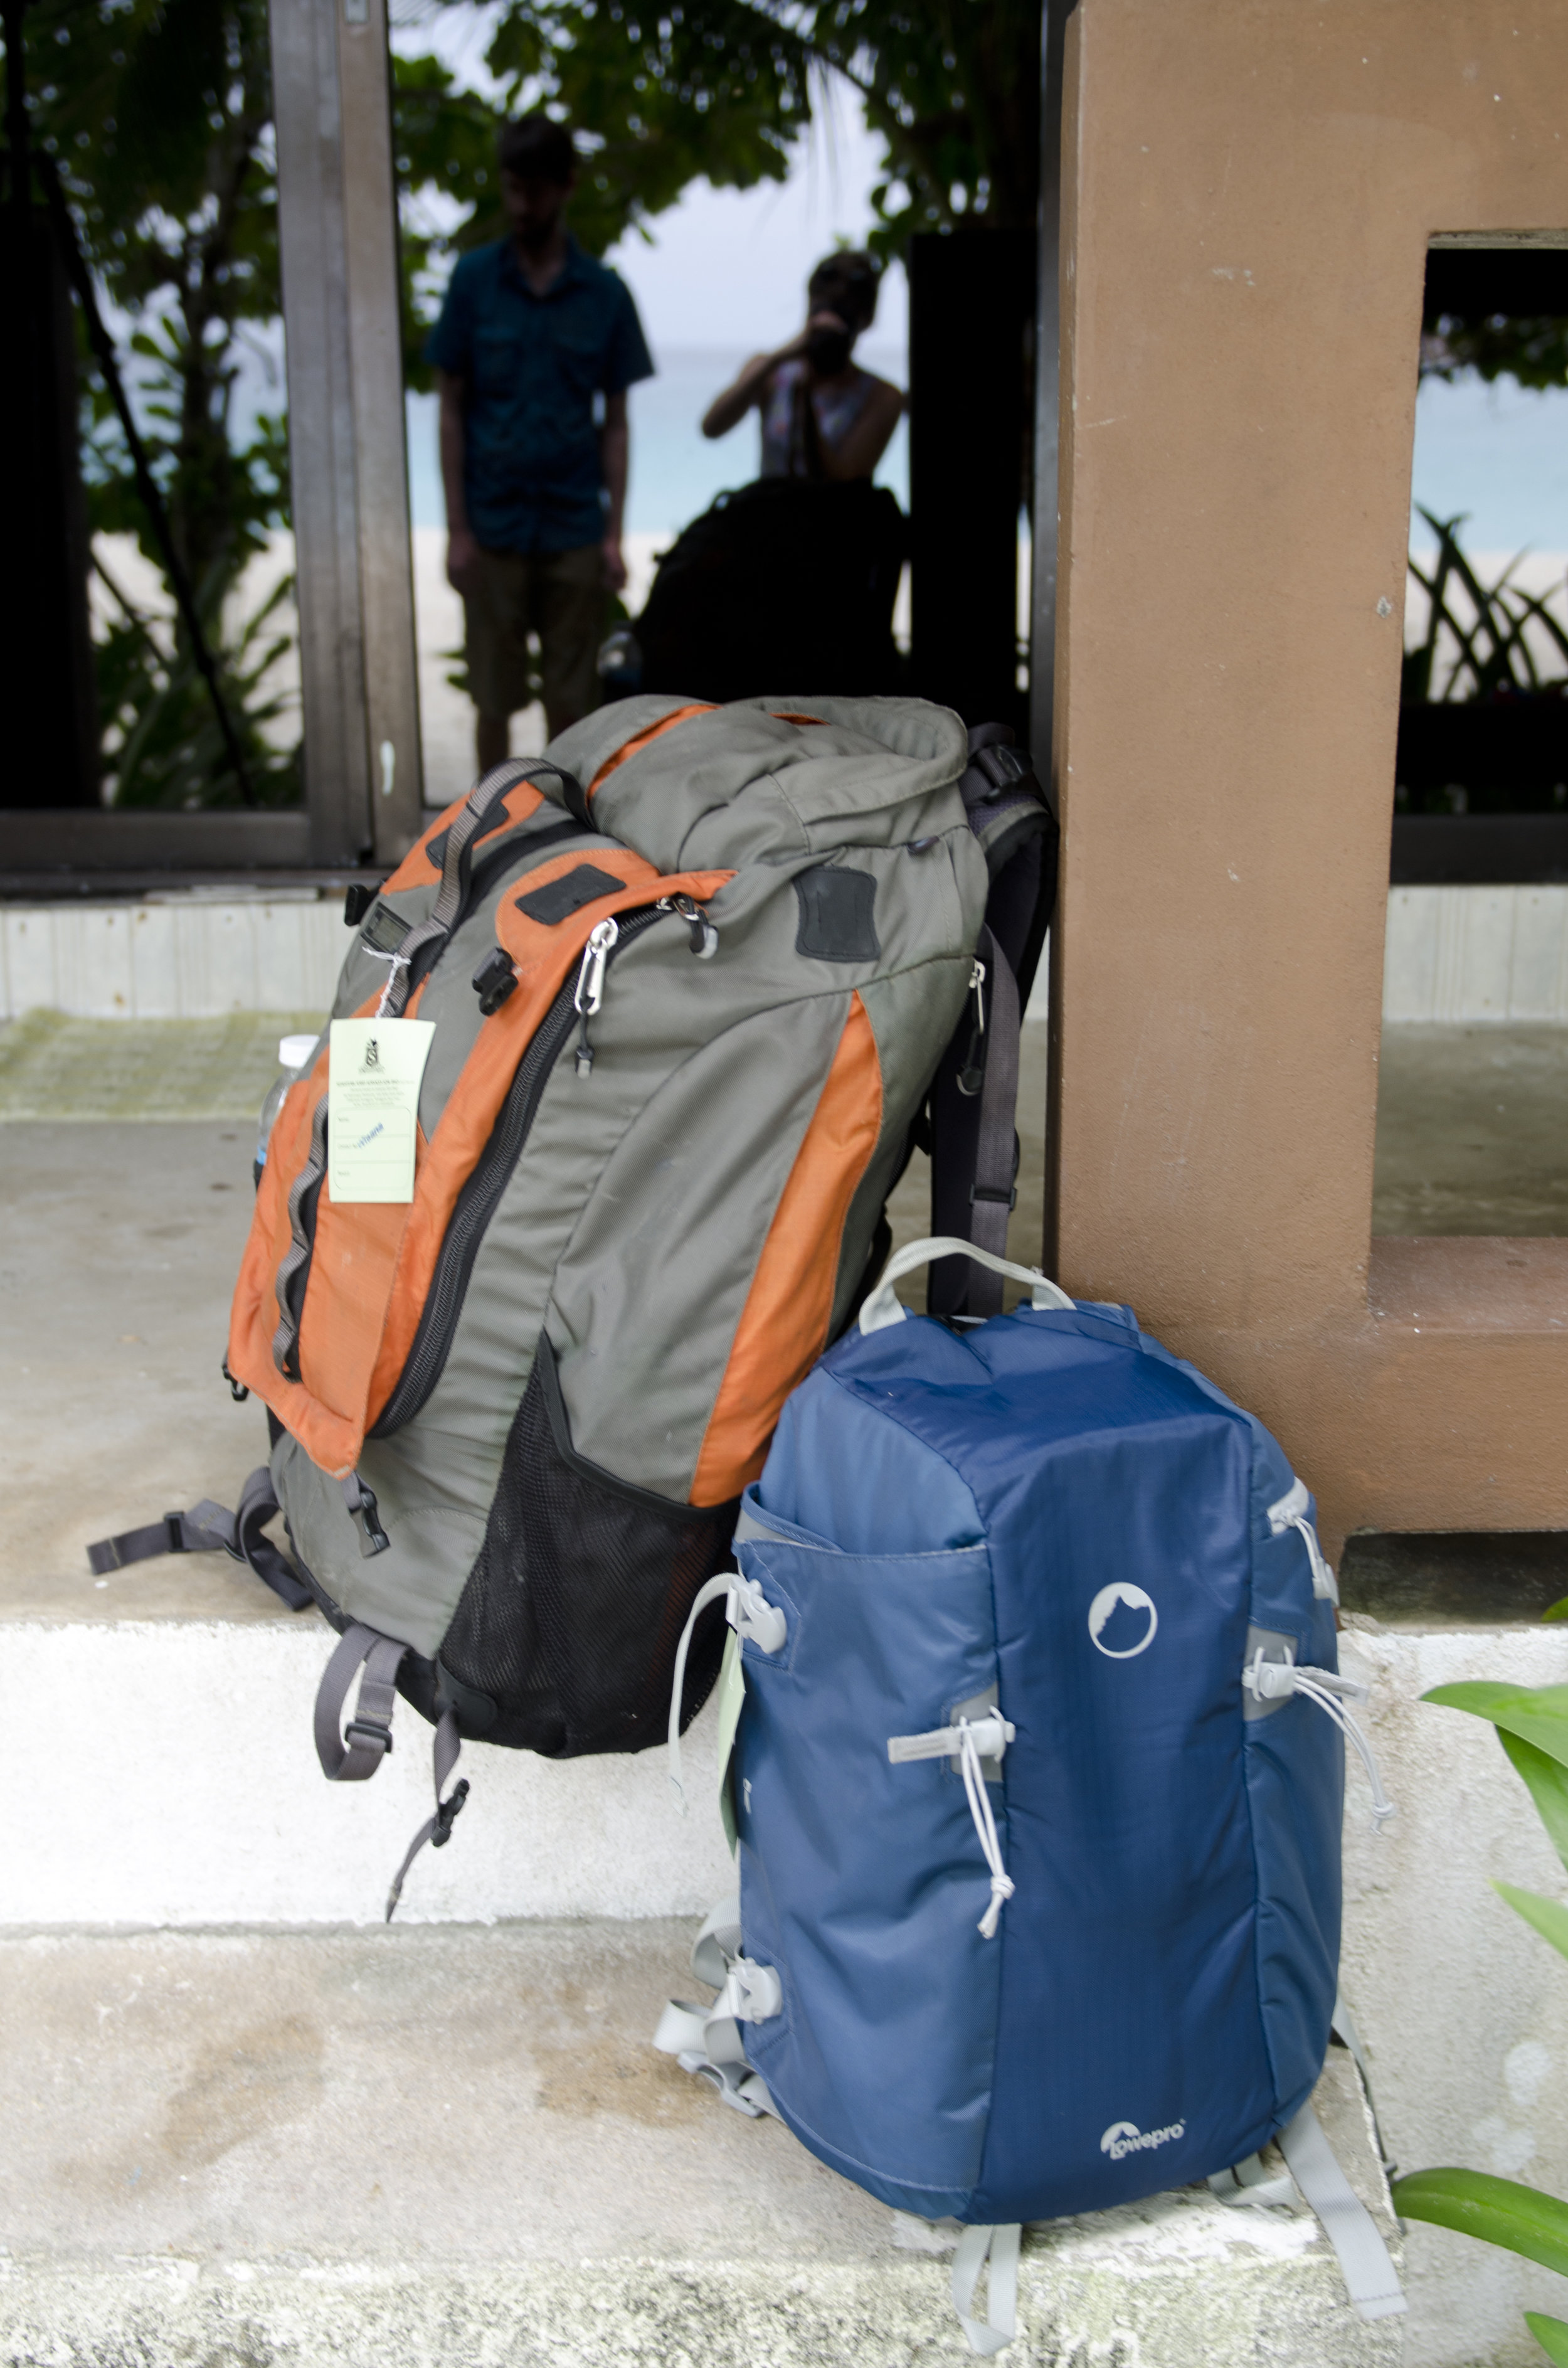 We traveled with just these two backpacks for our 2 week Asia trip - it's so freeing to pack light!